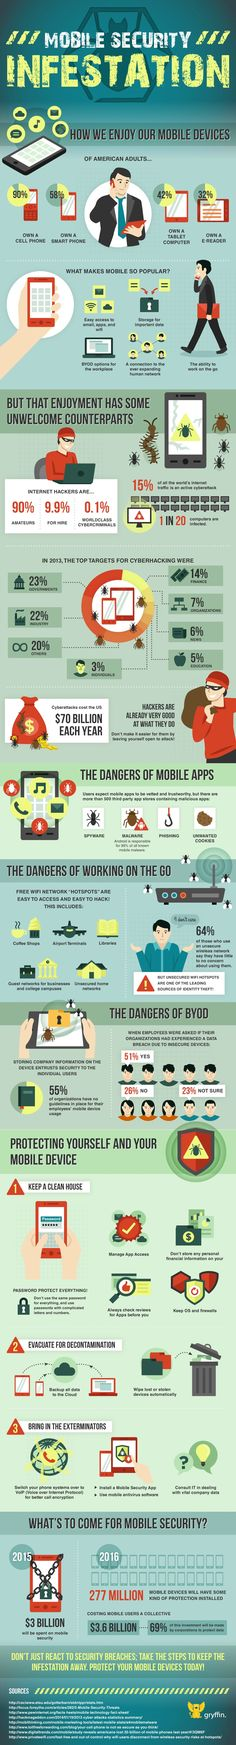 Mobile Security Infestation #infographic #Mobile #Security #internet